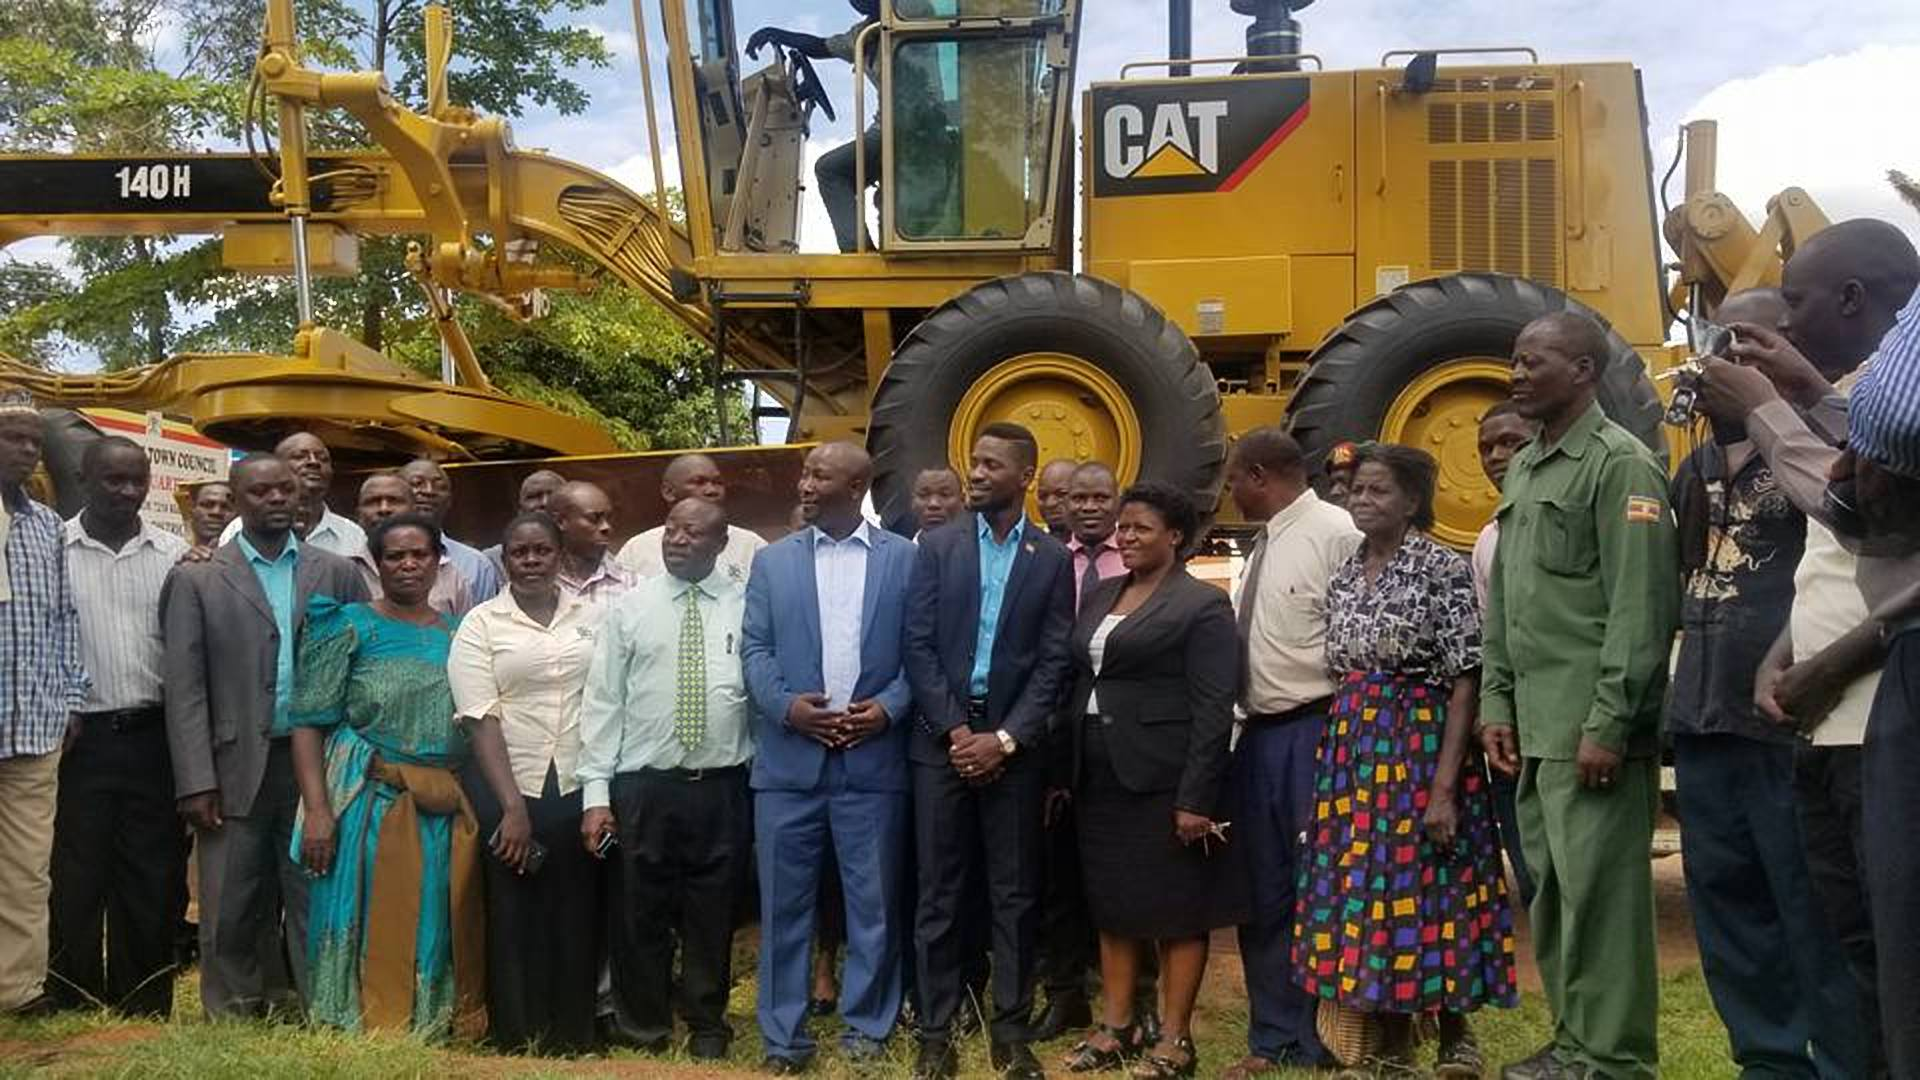 Kyadondo East MP Robert Kyagulanyi is joined by other leaders in a group photo following the unveiling of the heavy duty grader (COURTESY PHOTO)